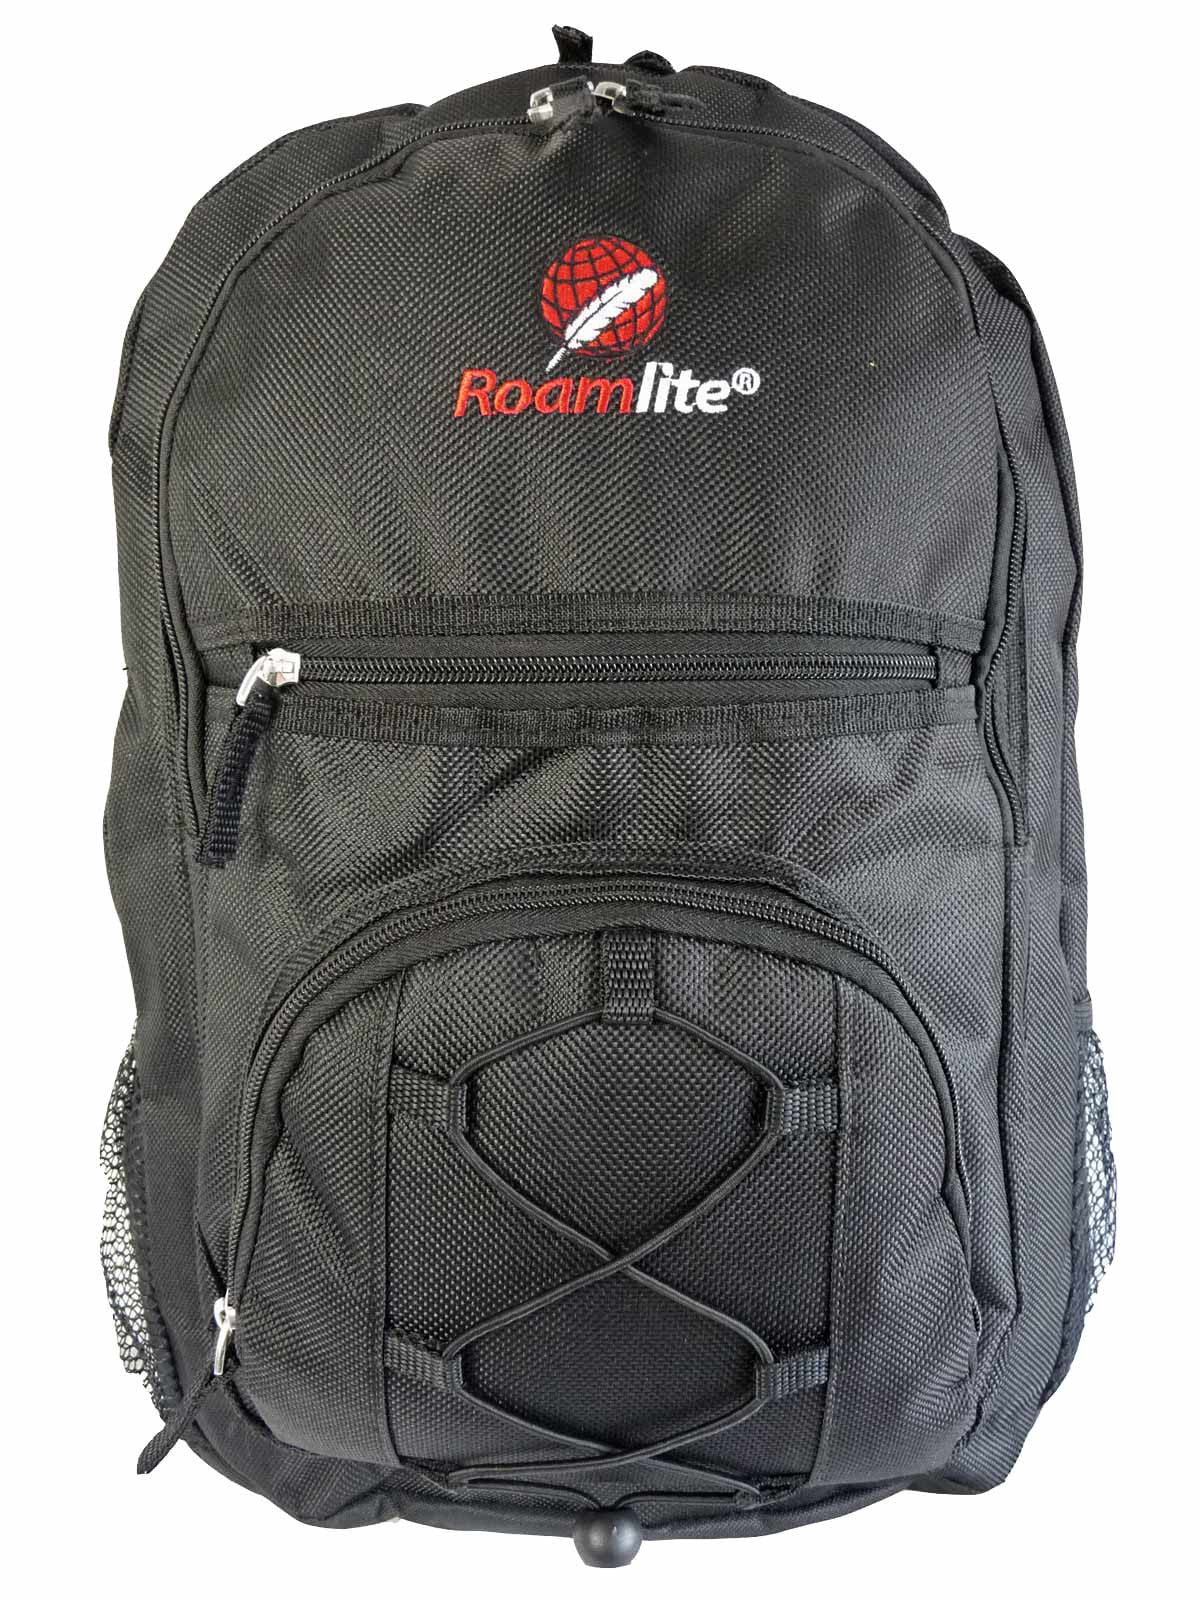 Kids School Bags RL37M Black Front View